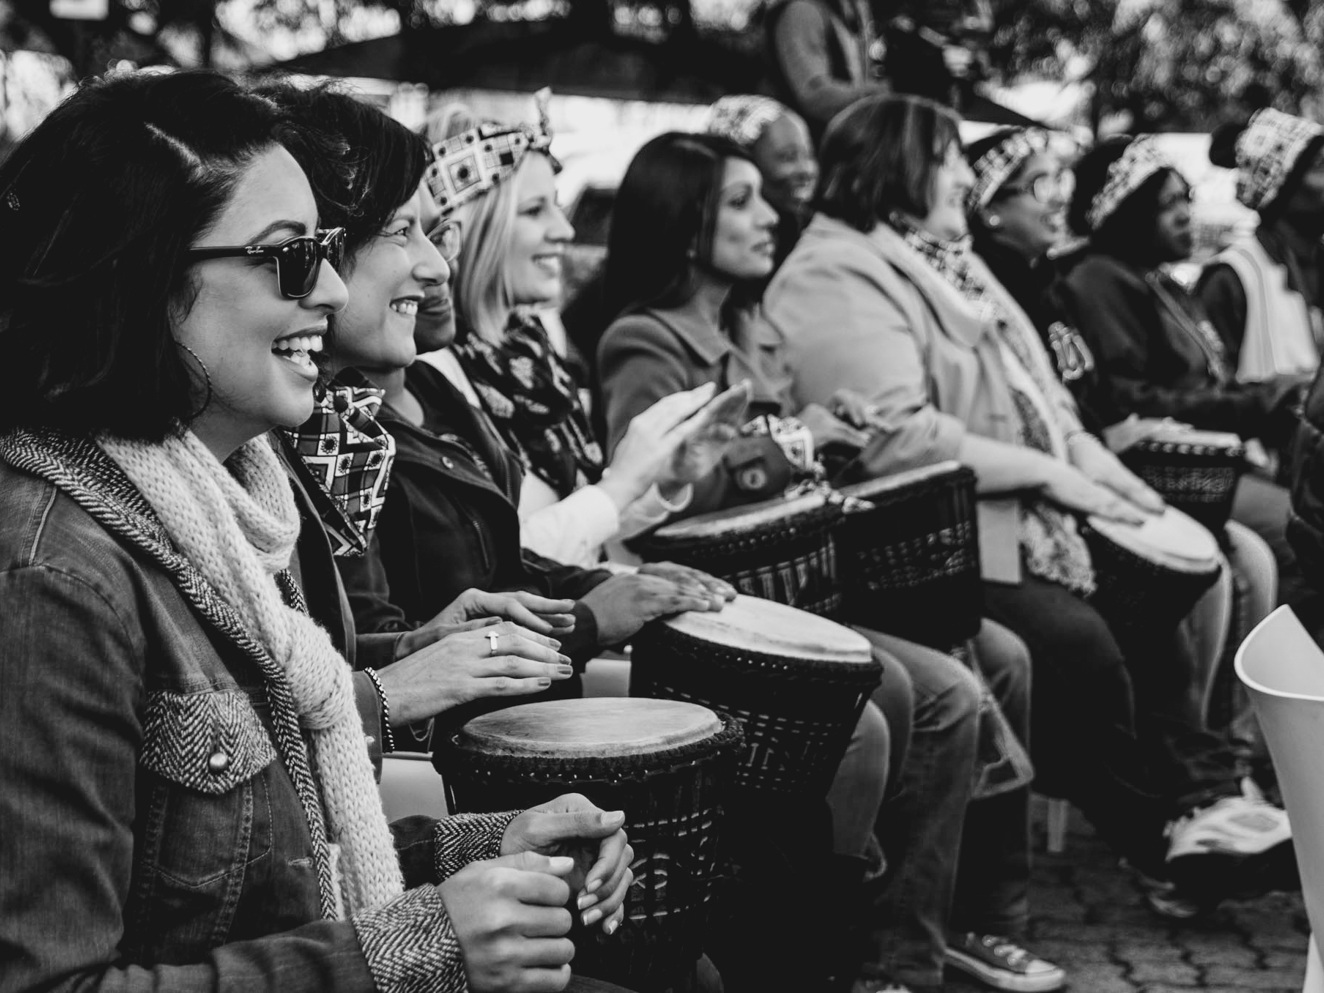 women-drumming-and-smiling-black-and-white.jpg